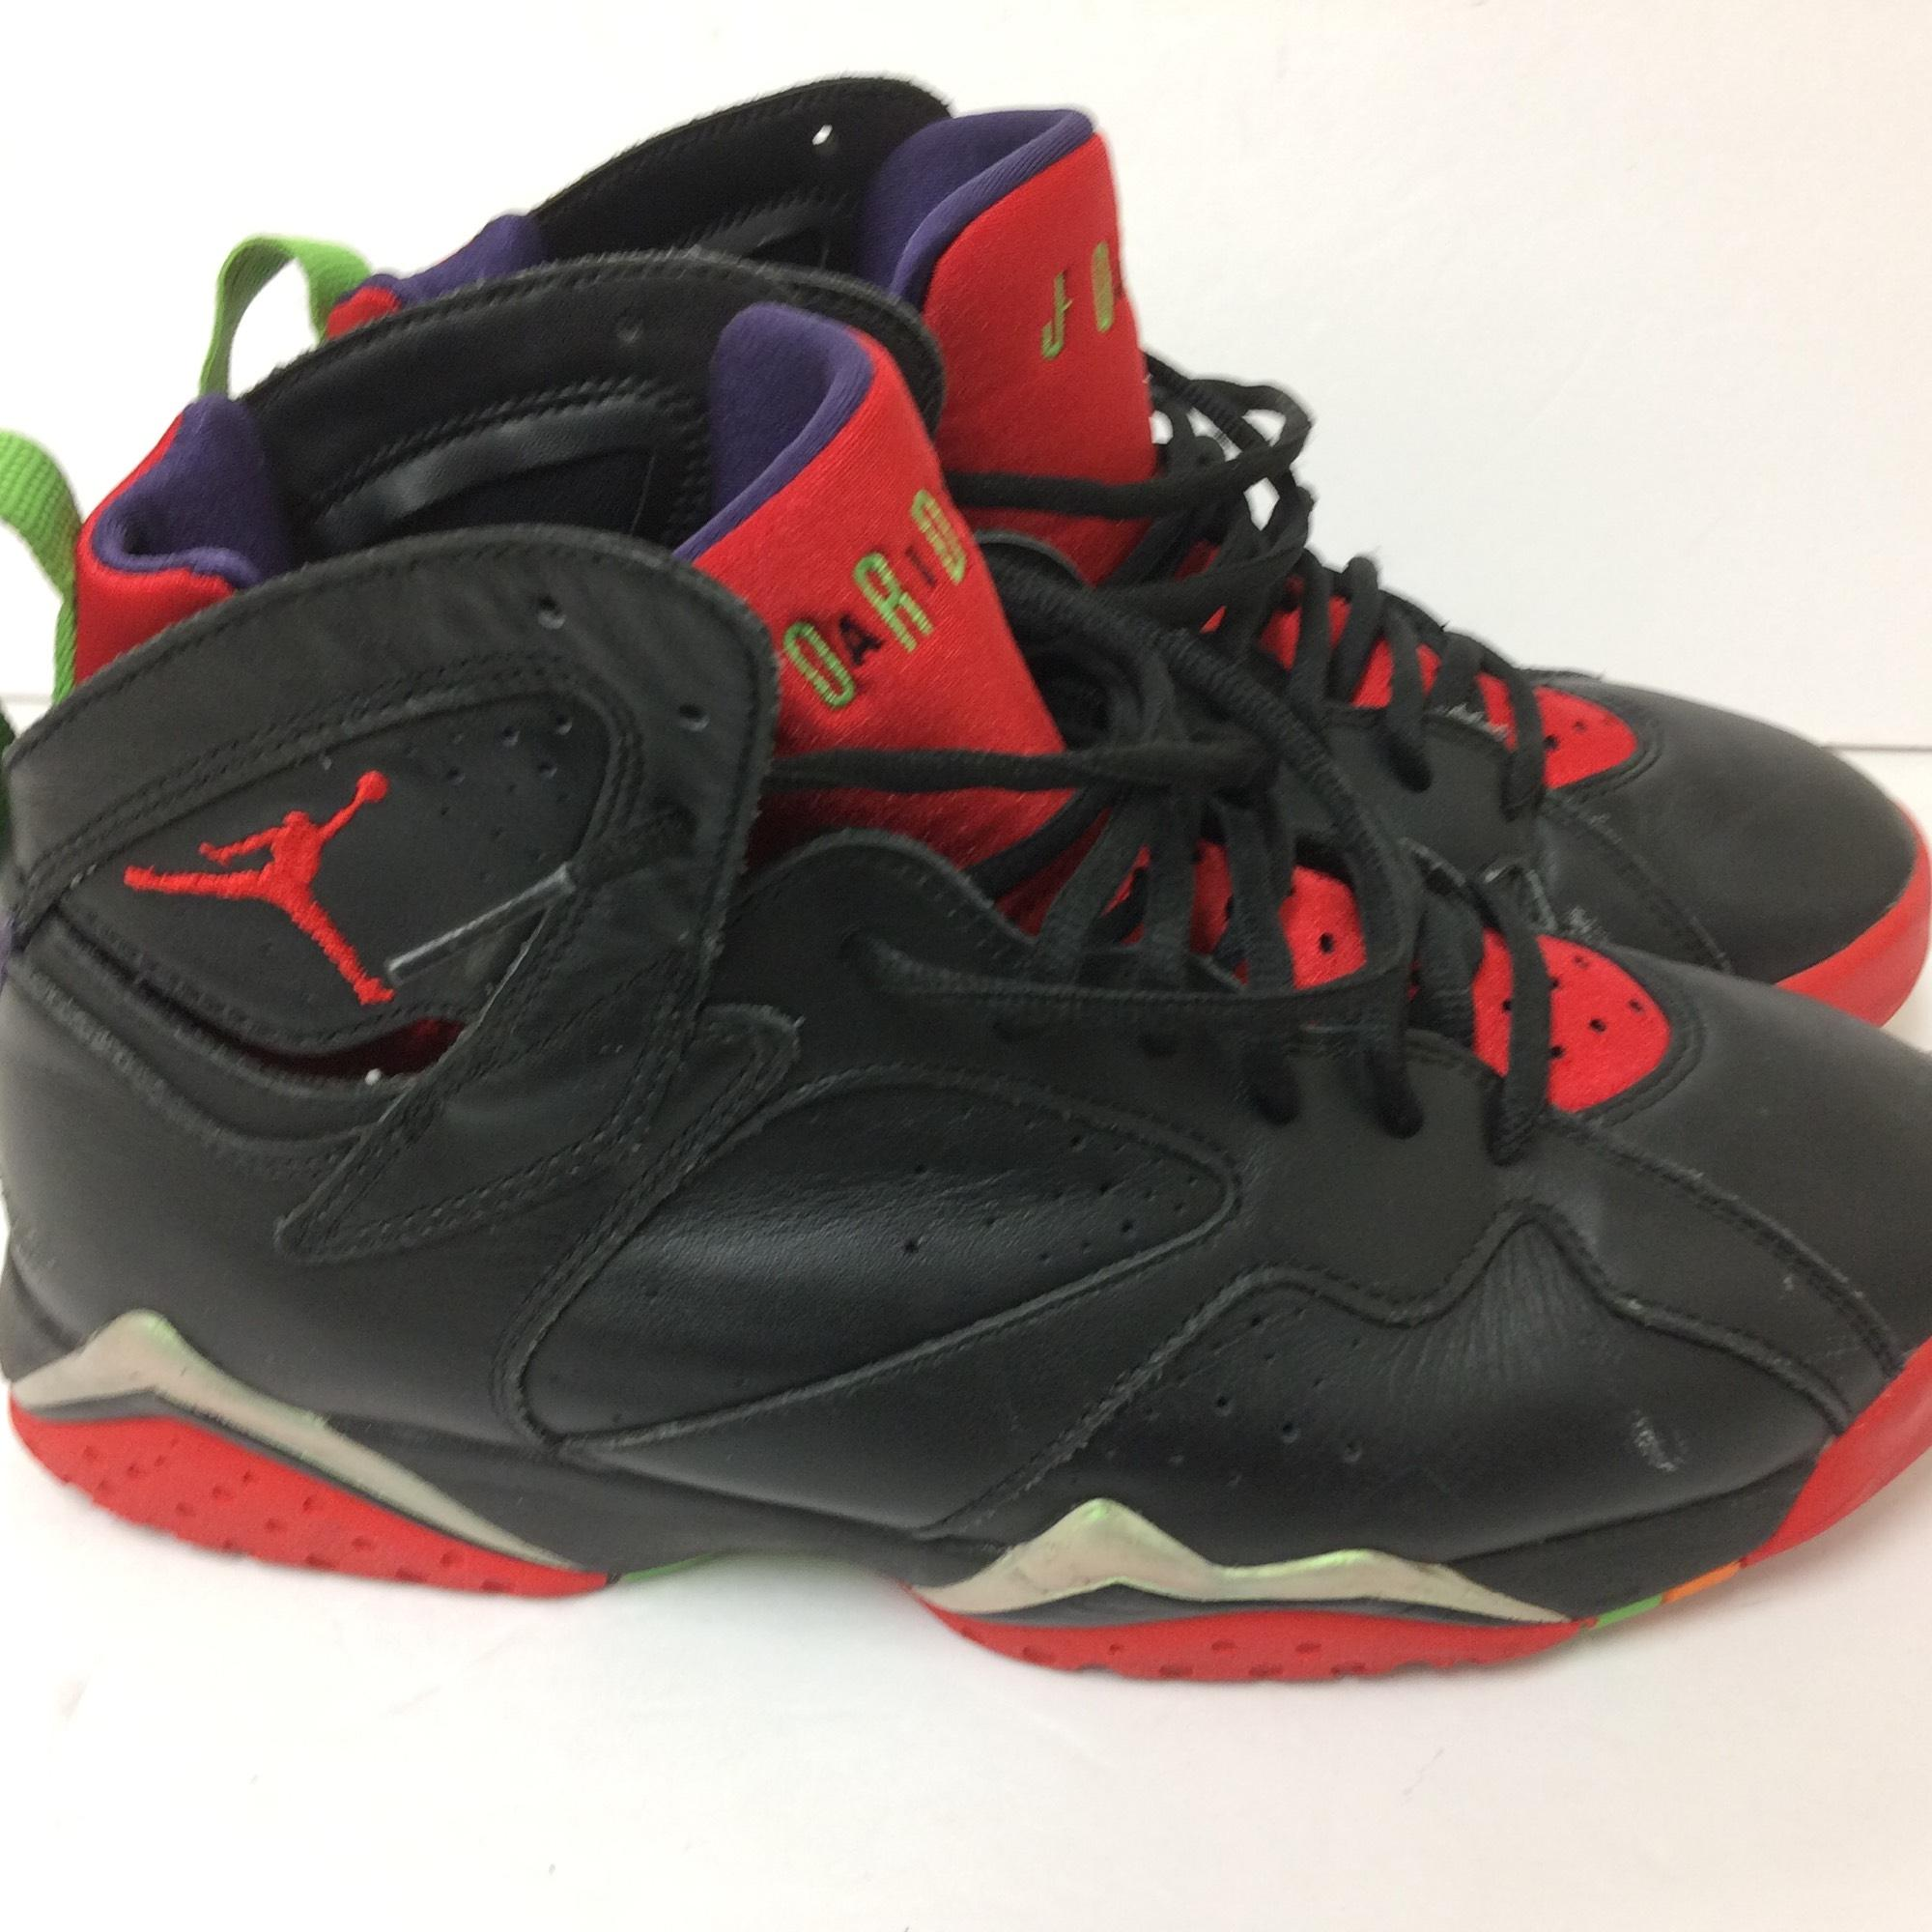 65673628487a49 ... statue white black militia green cheap sale e68eb 6916c  discount code  for air jordan retro 7 mens size 9 marvin the martian red black purple